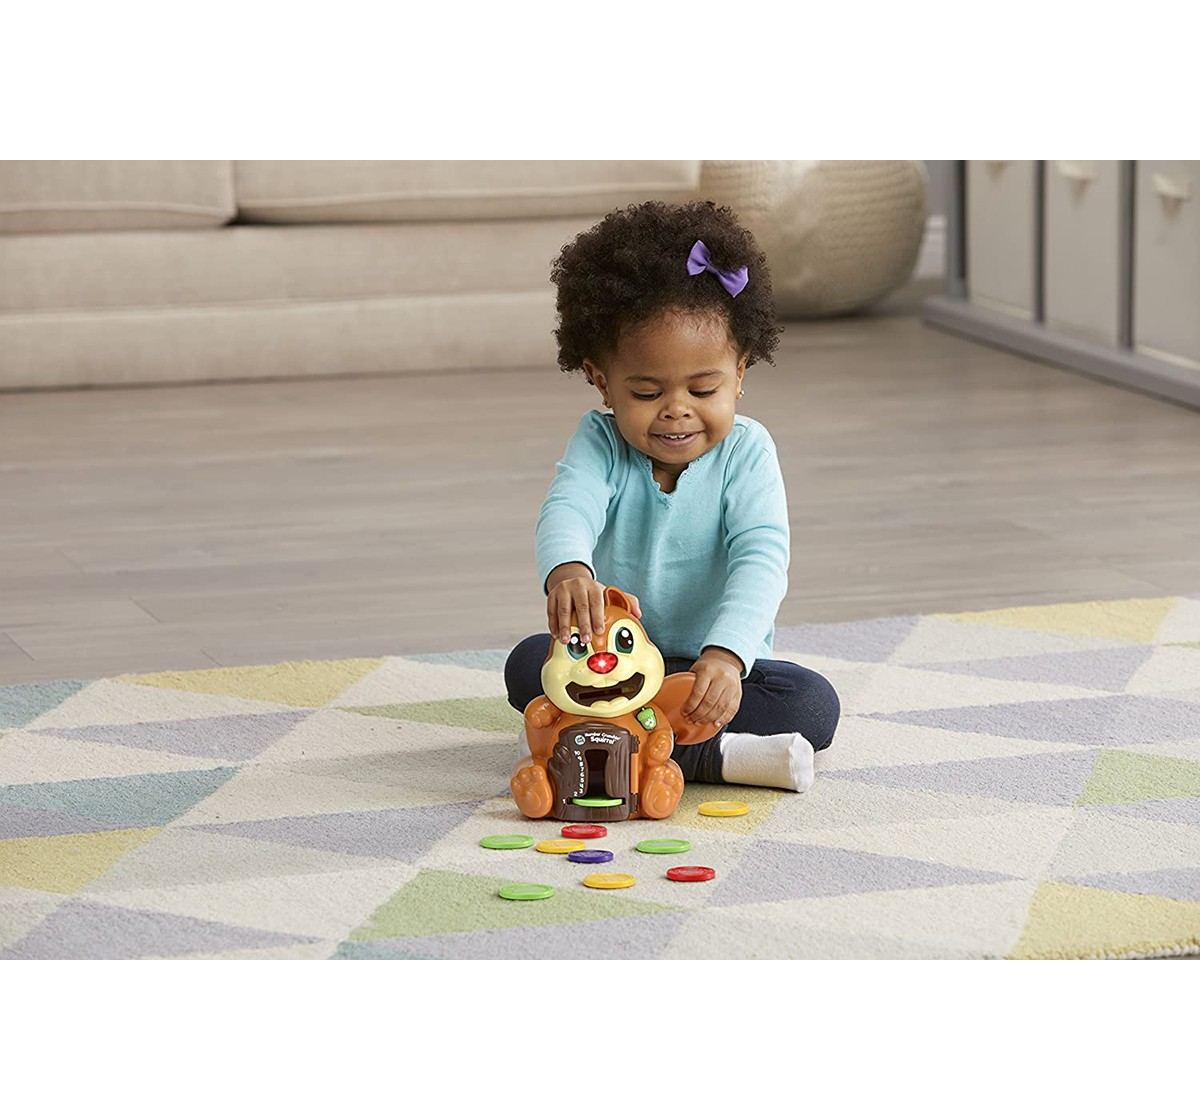 Leap Frog  Number Crunchin Squirrel Learning Toys for Kids age 2Y+ (Brown)